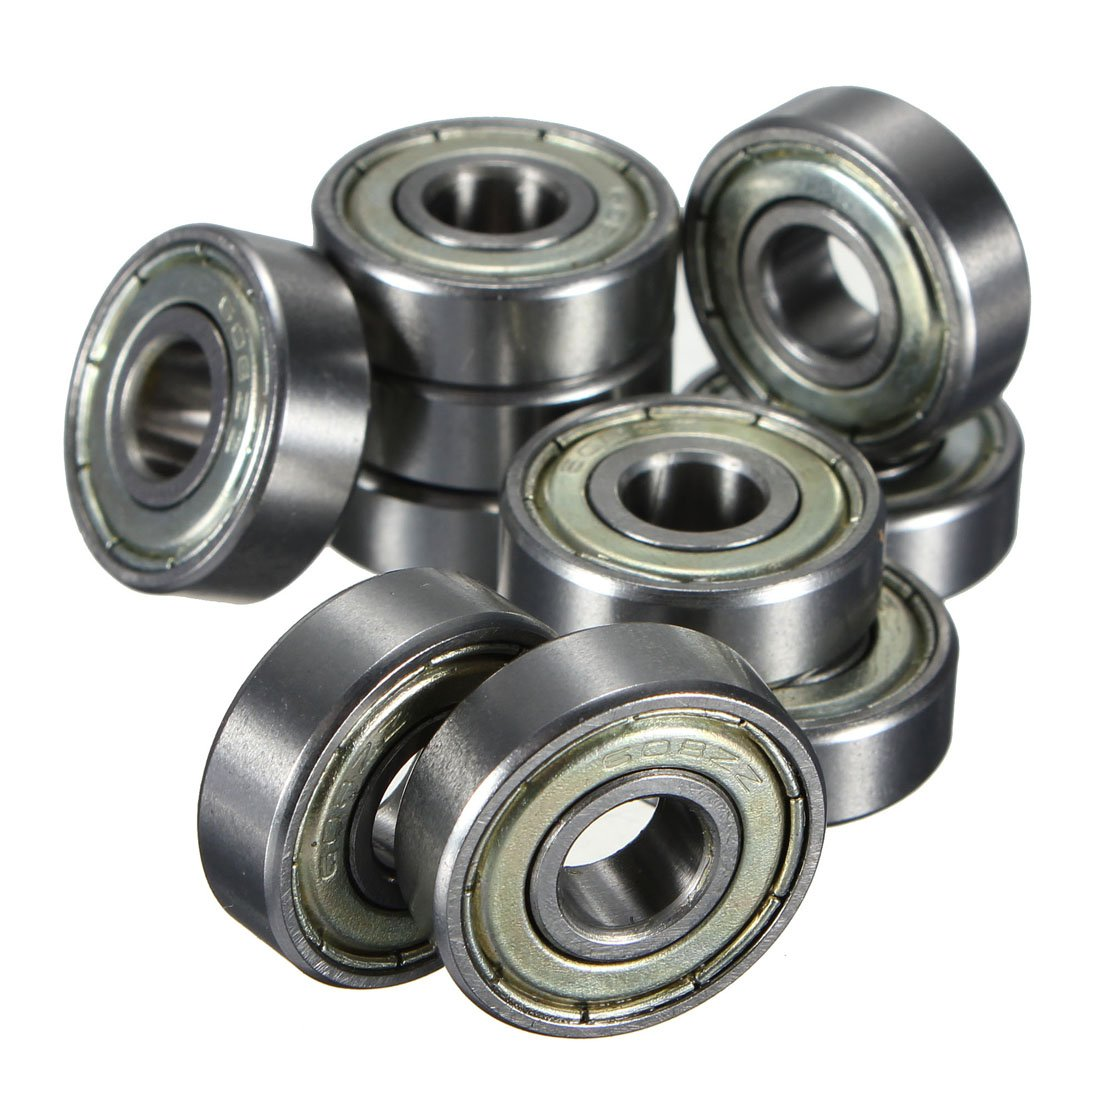 Light Holder 10x Ball Bearings Miniature Deep Groove Ball Bearings 608